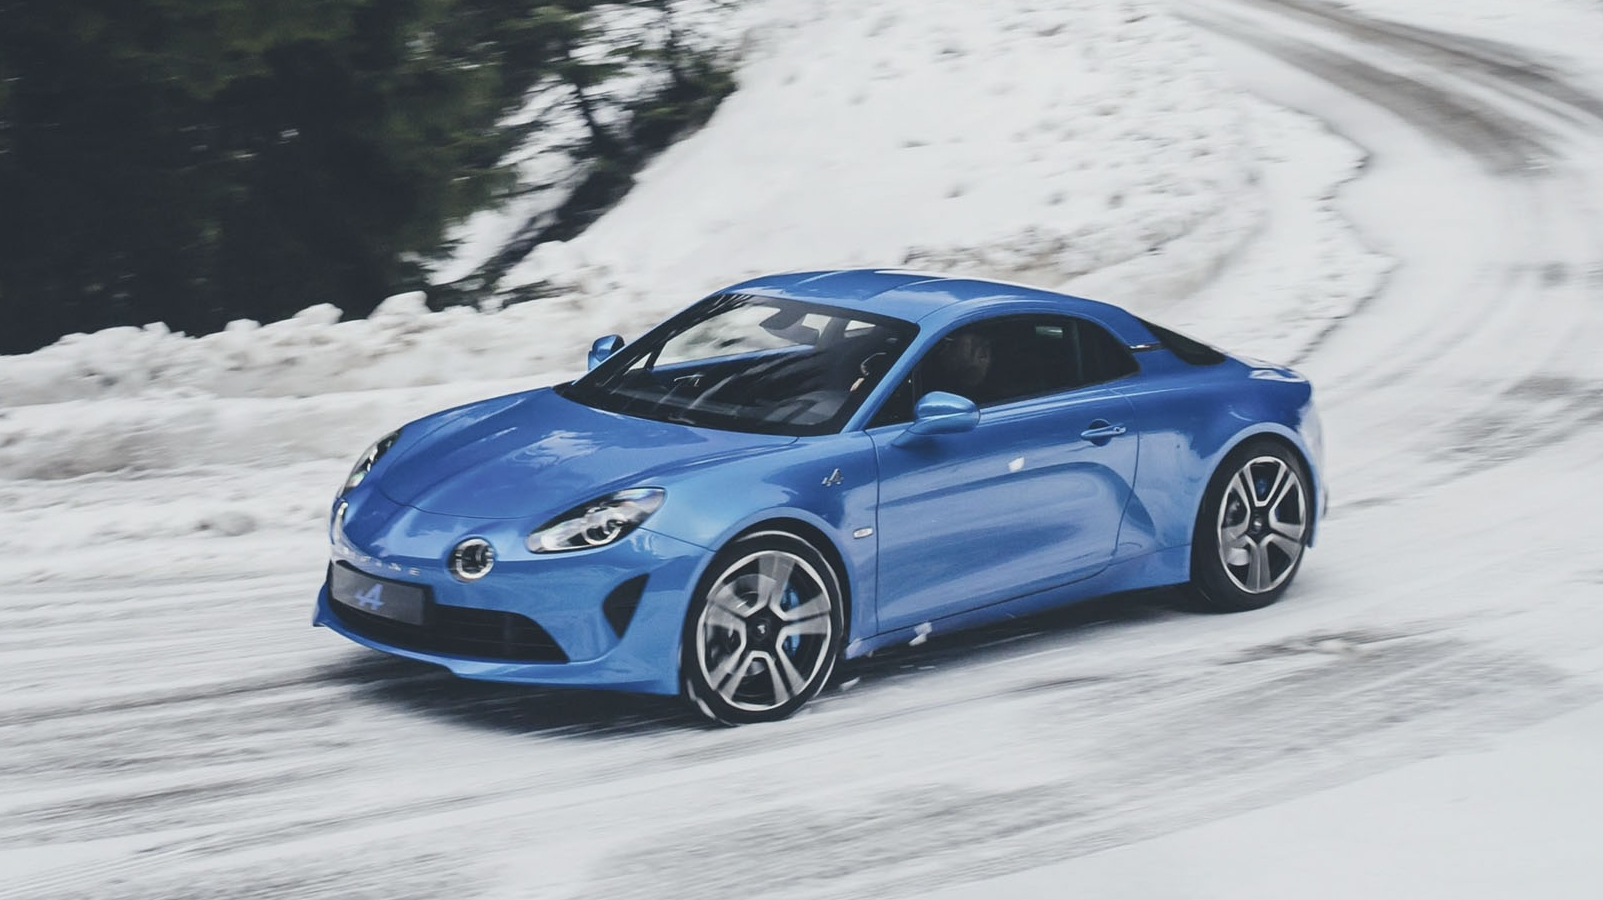 2018 alpine a110 premiere edition top speed. Black Bedroom Furniture Sets. Home Design Ideas